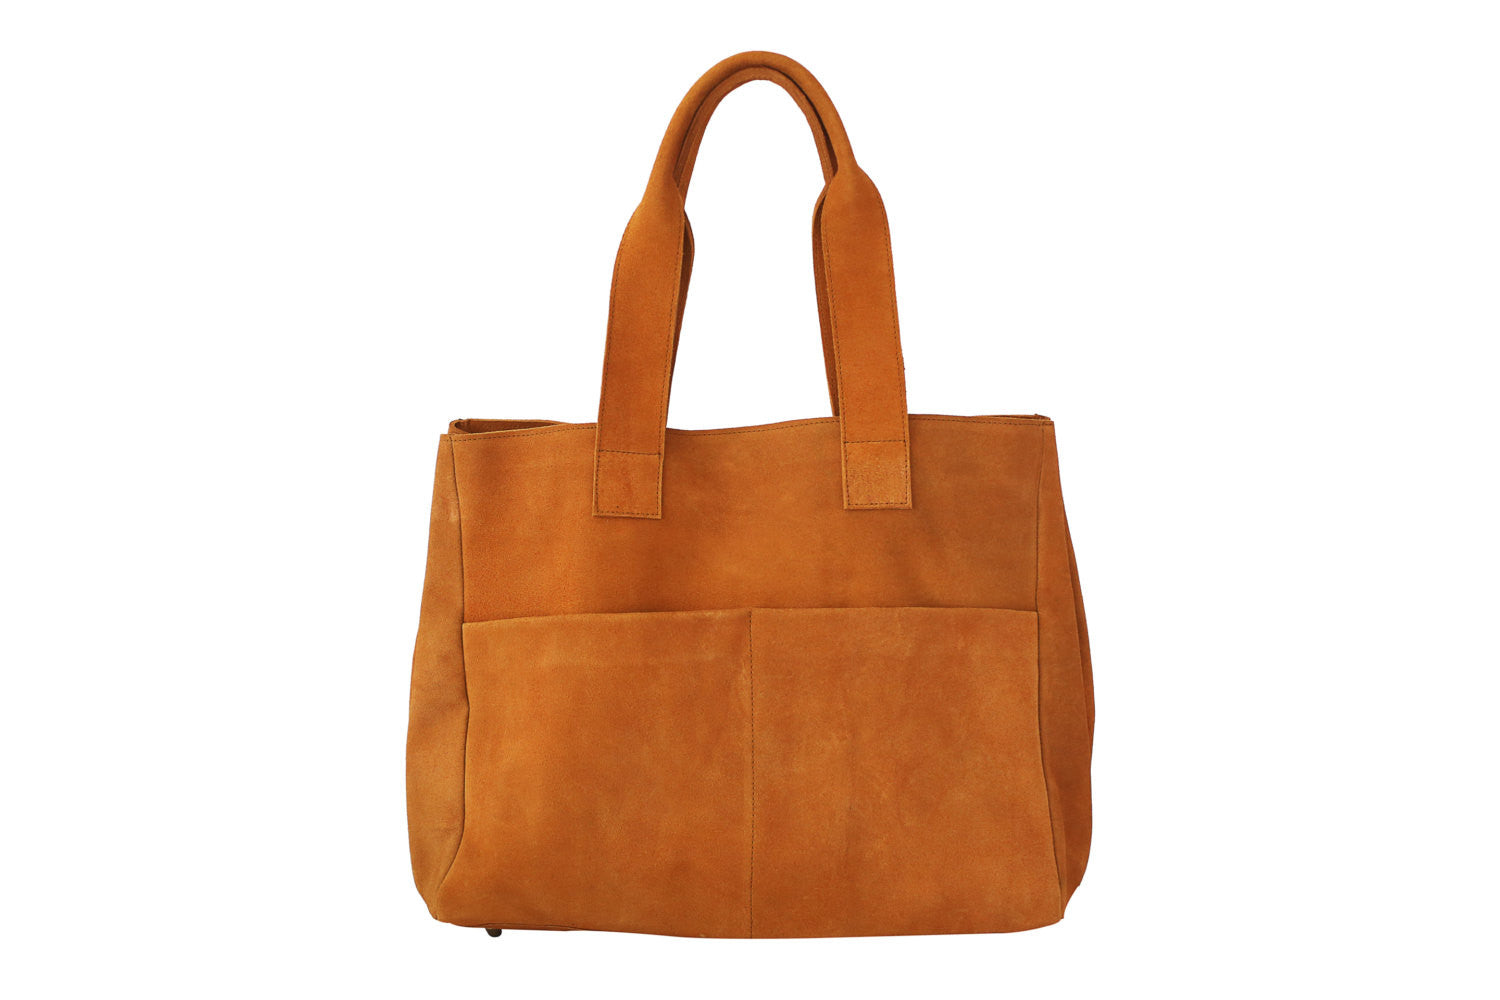 Bags and Purses; Leather Tote; Madewell; Sezane tote bag